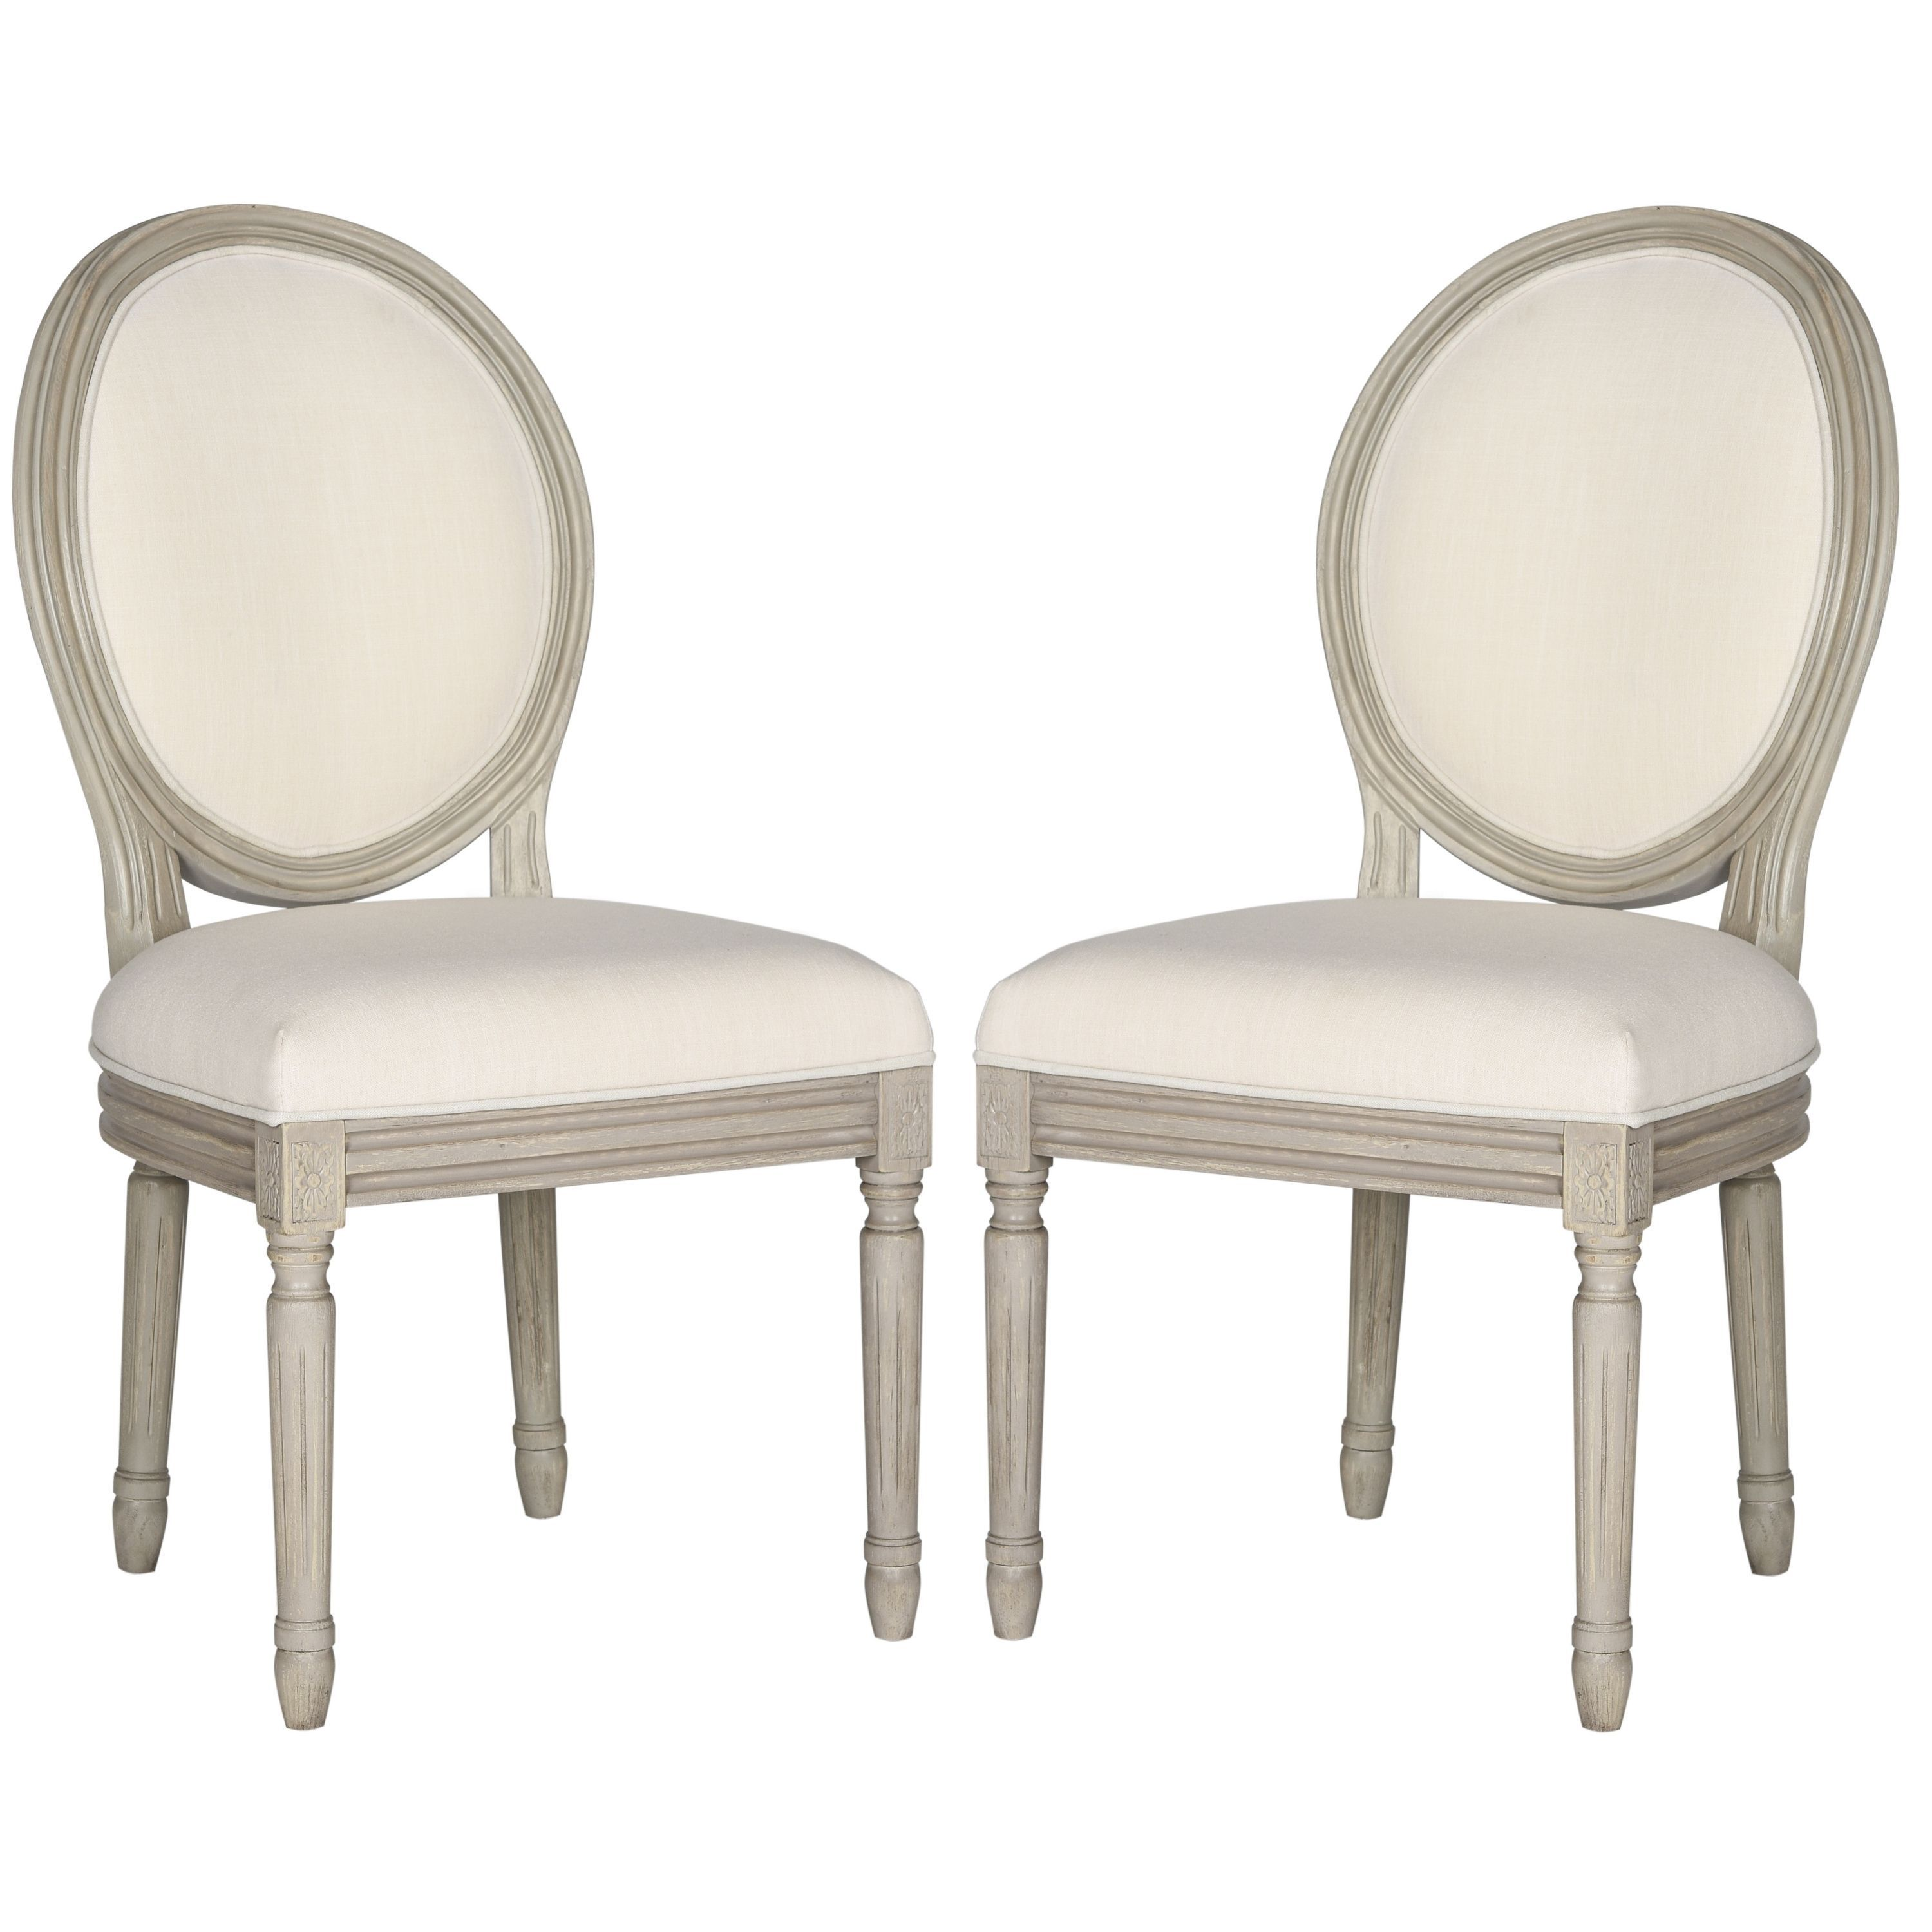 restoration hardware louis chair - stocked in gray weathered wood ...